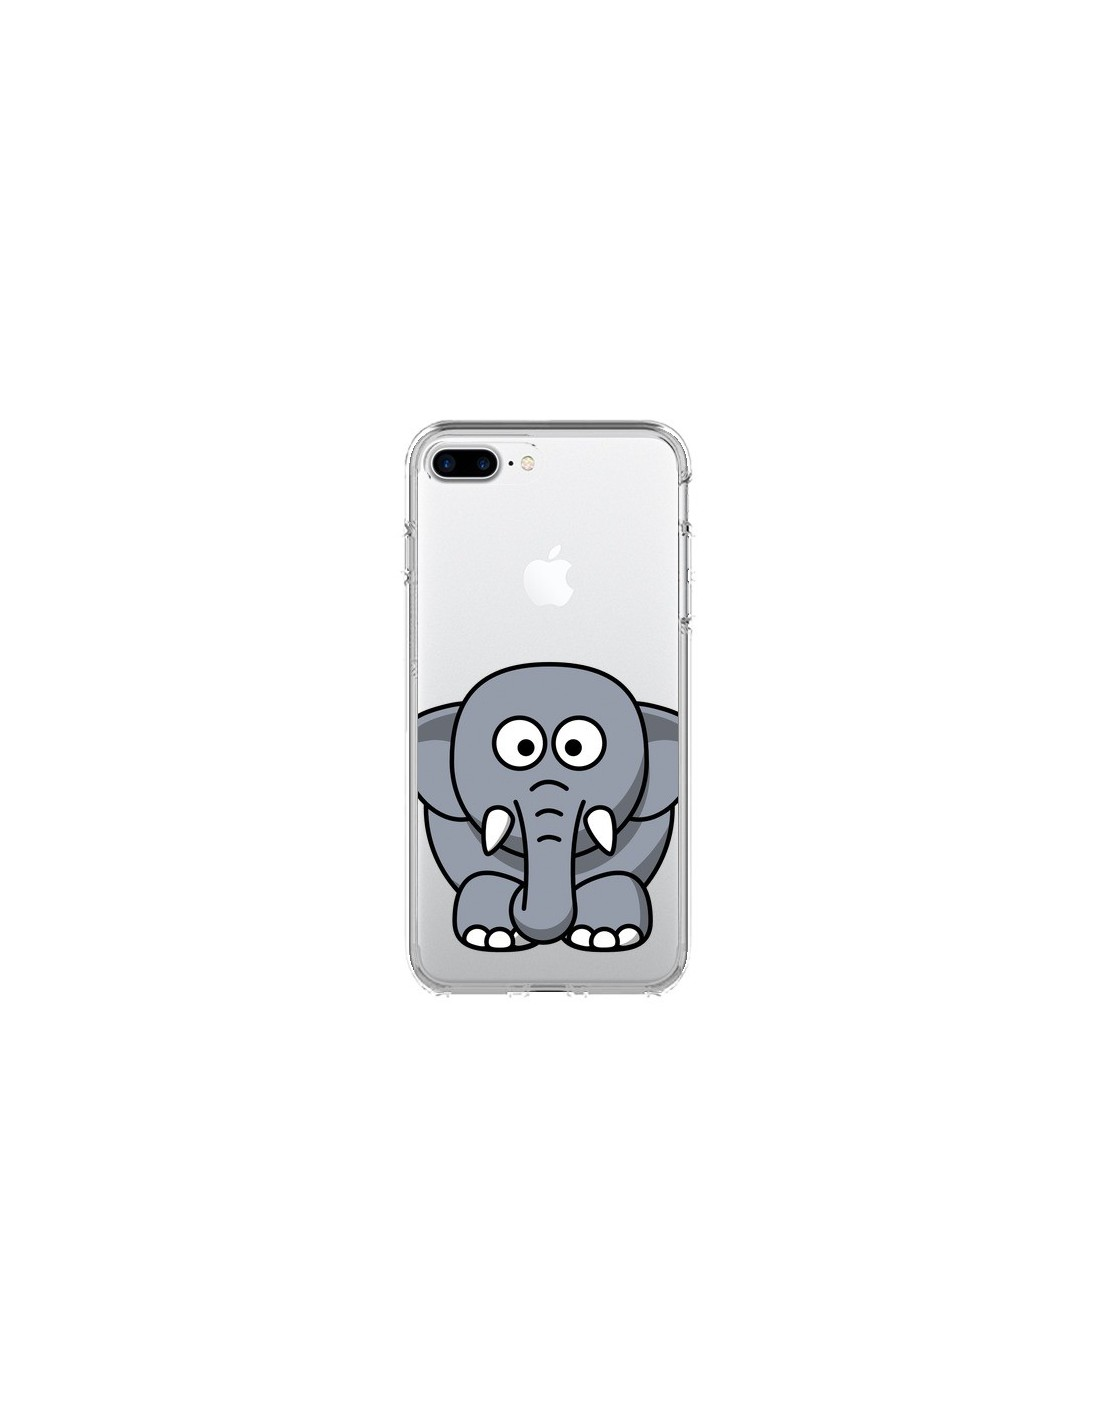 coque iphone 7 plus et 8 plus elephant animal transparente yohan b